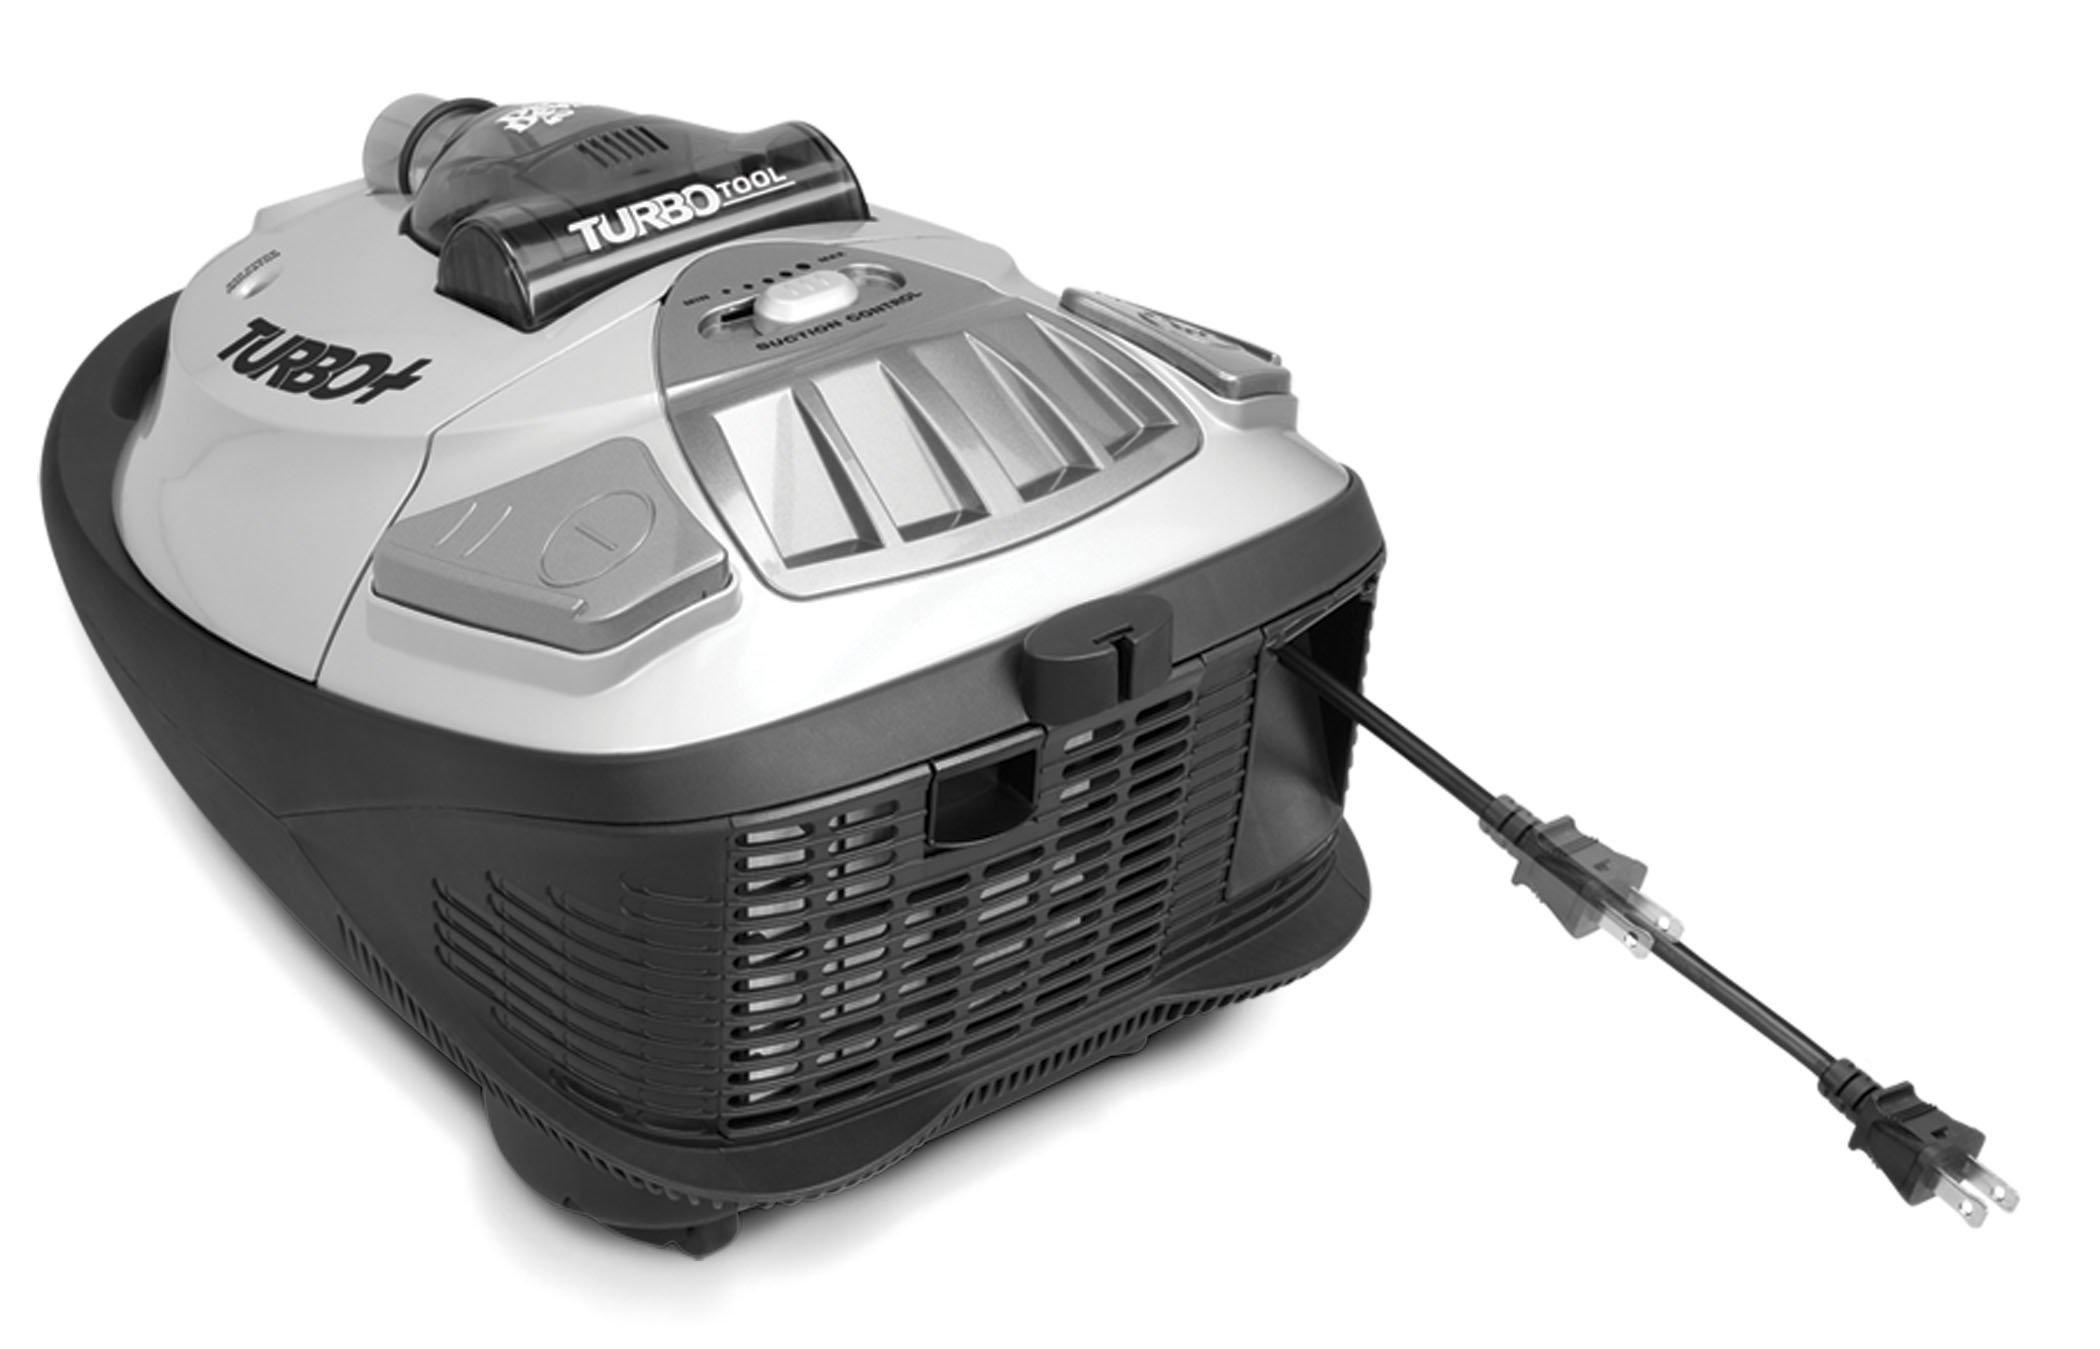 Turbo Plus Bagged Canister Vacuum4